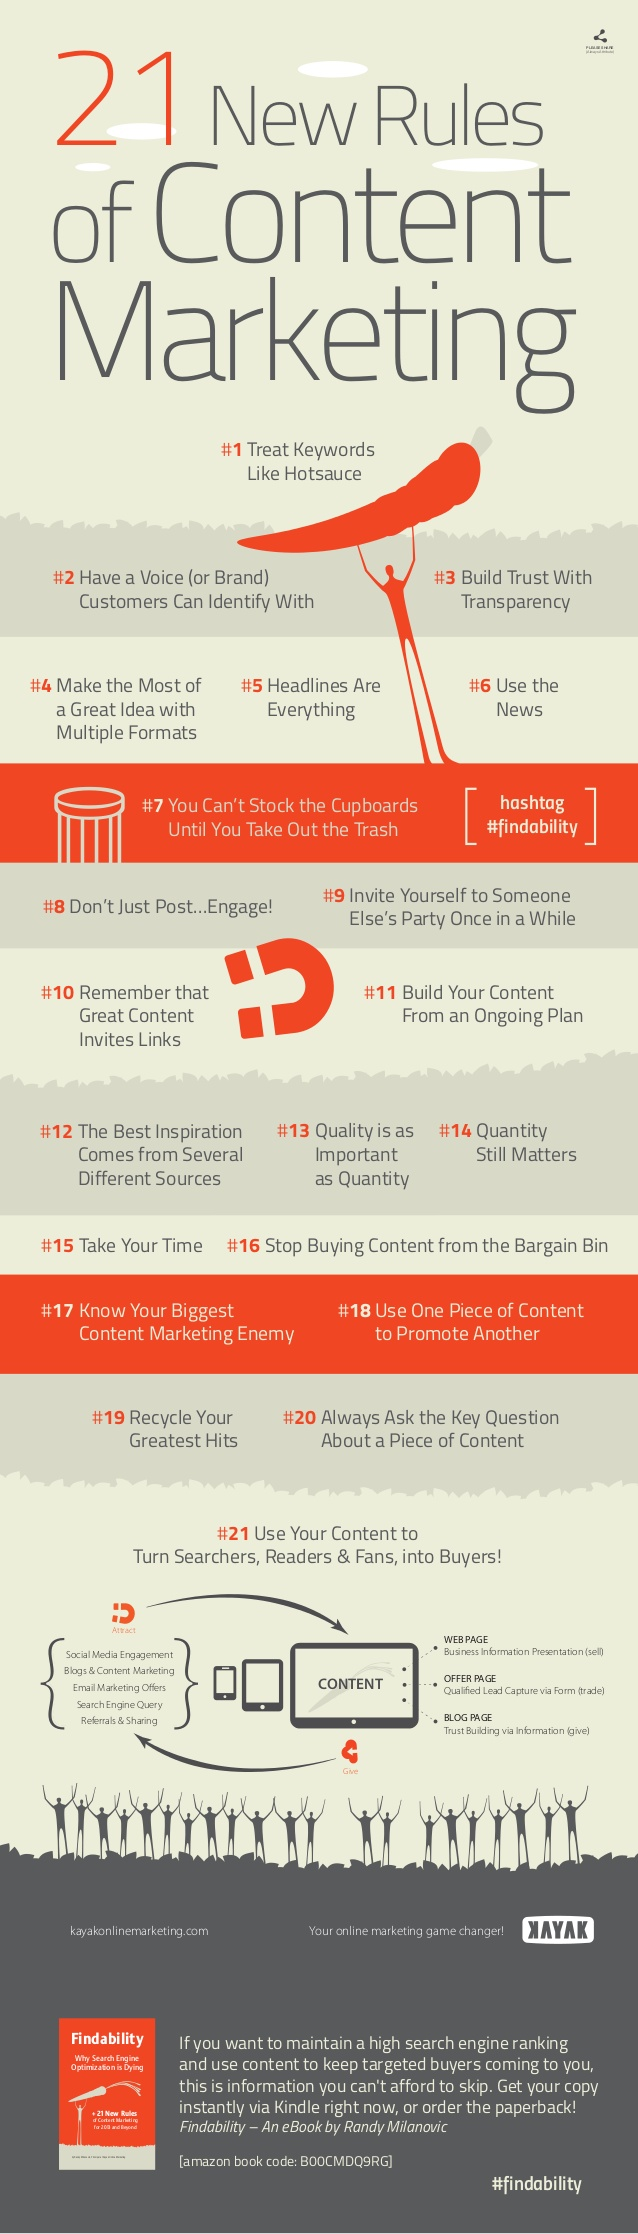 21-rules-content-marketing